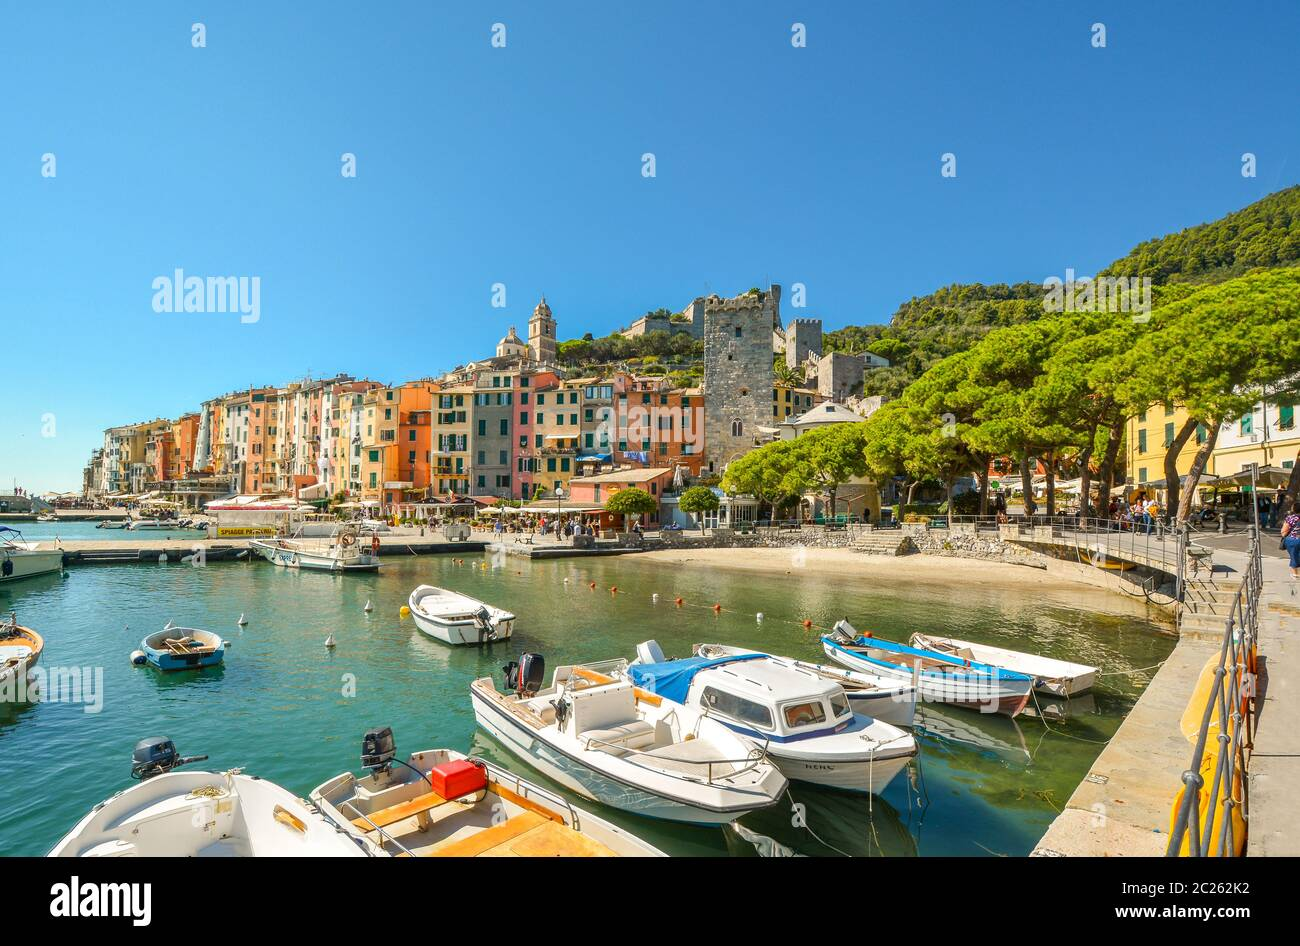 The colorful village, marina, sea, boats and sandy beach at Portovenere, Italy, along the Ligurian coast of the Cinque Terre and Gulf of Poets. Stock Photo